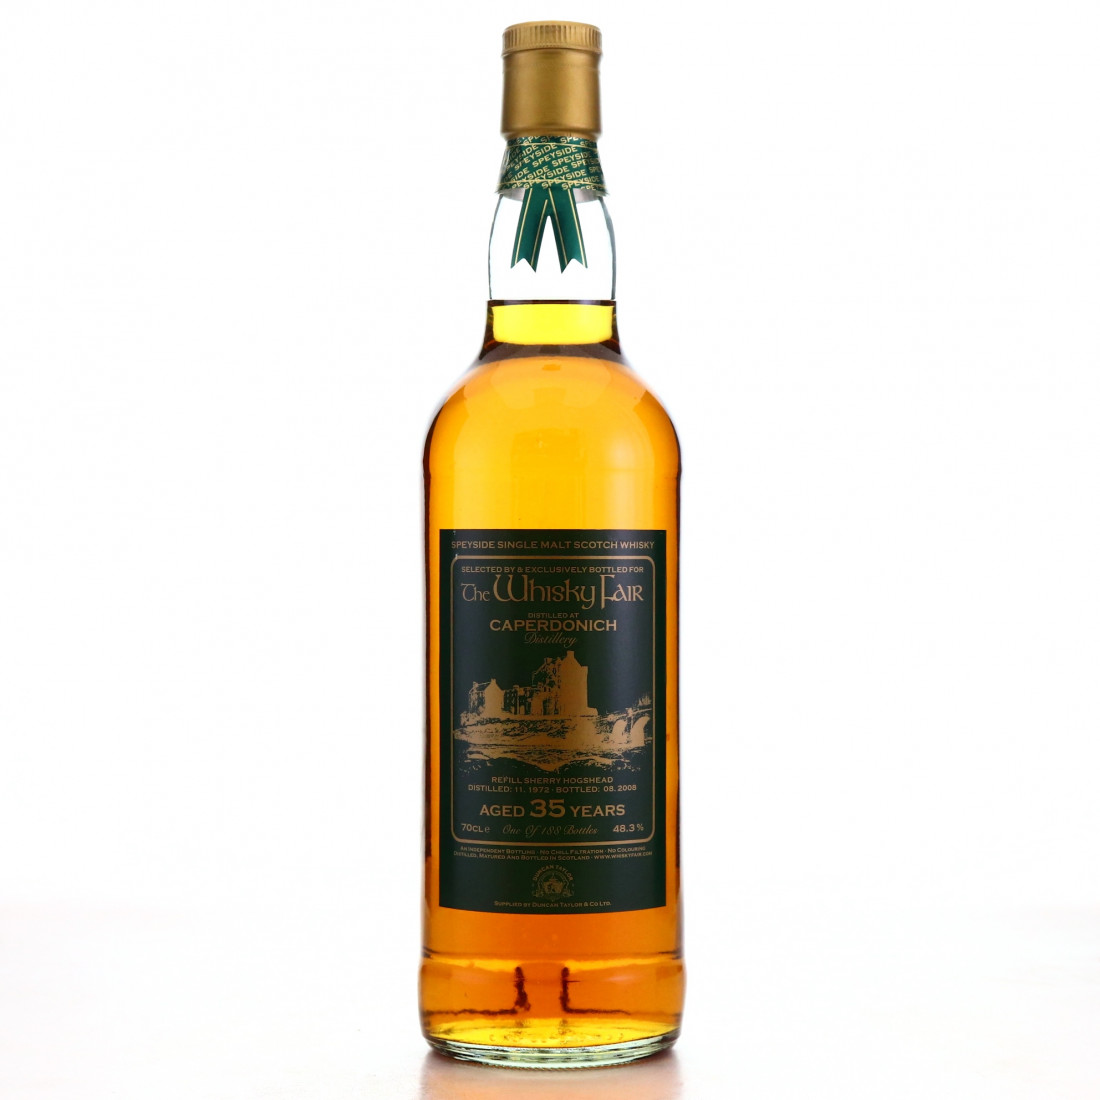 Caperdonich 1972 The Whisky Fair 35 Year Old